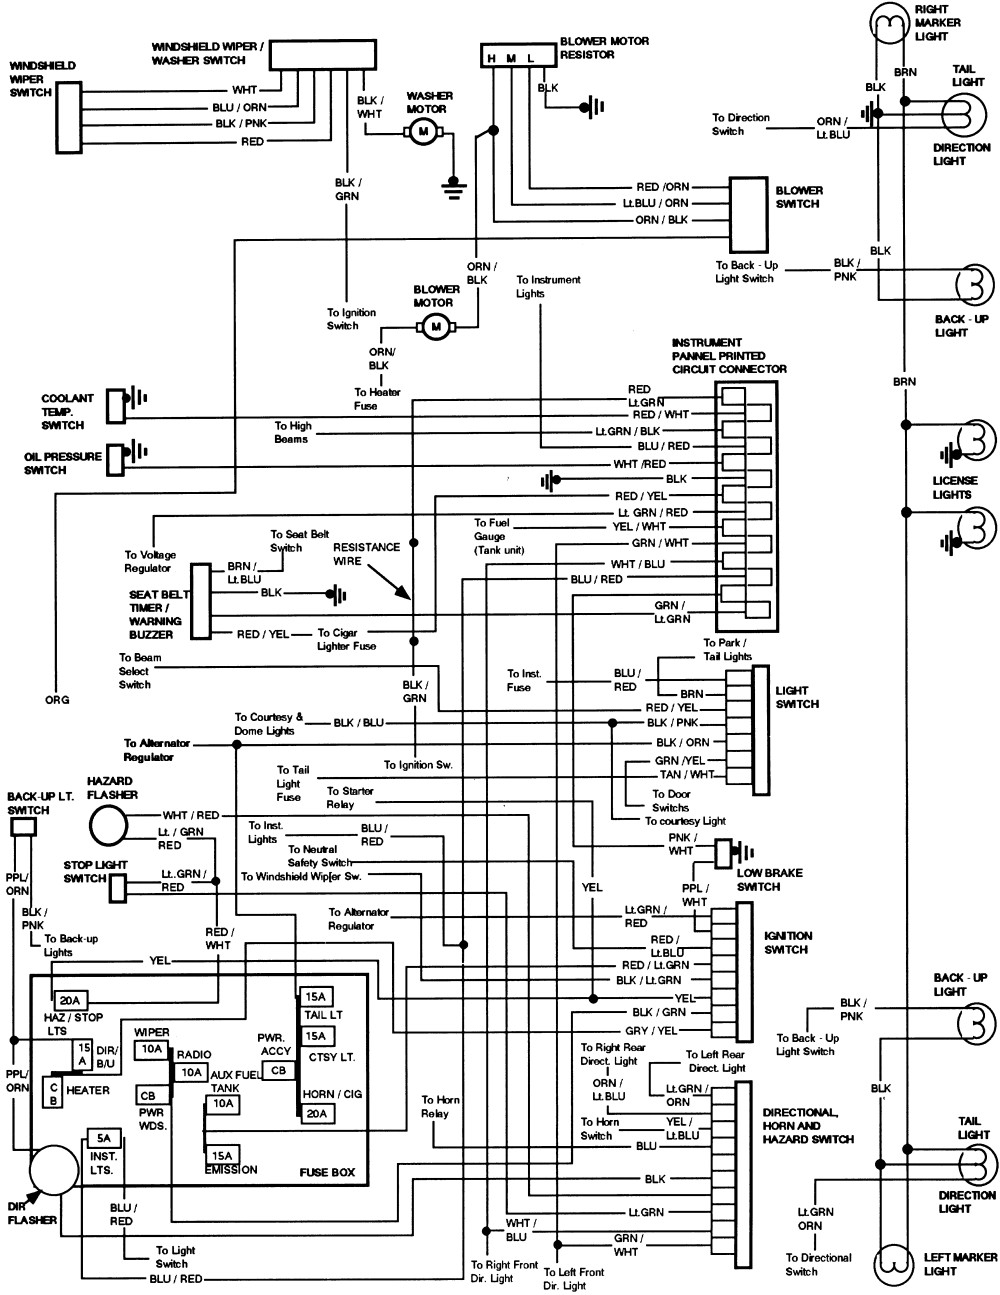 1989 ford f250 wiring diagram - wiring diagram tags pure-tool -  pure-tool.discoveriran.it  discoveriran.it